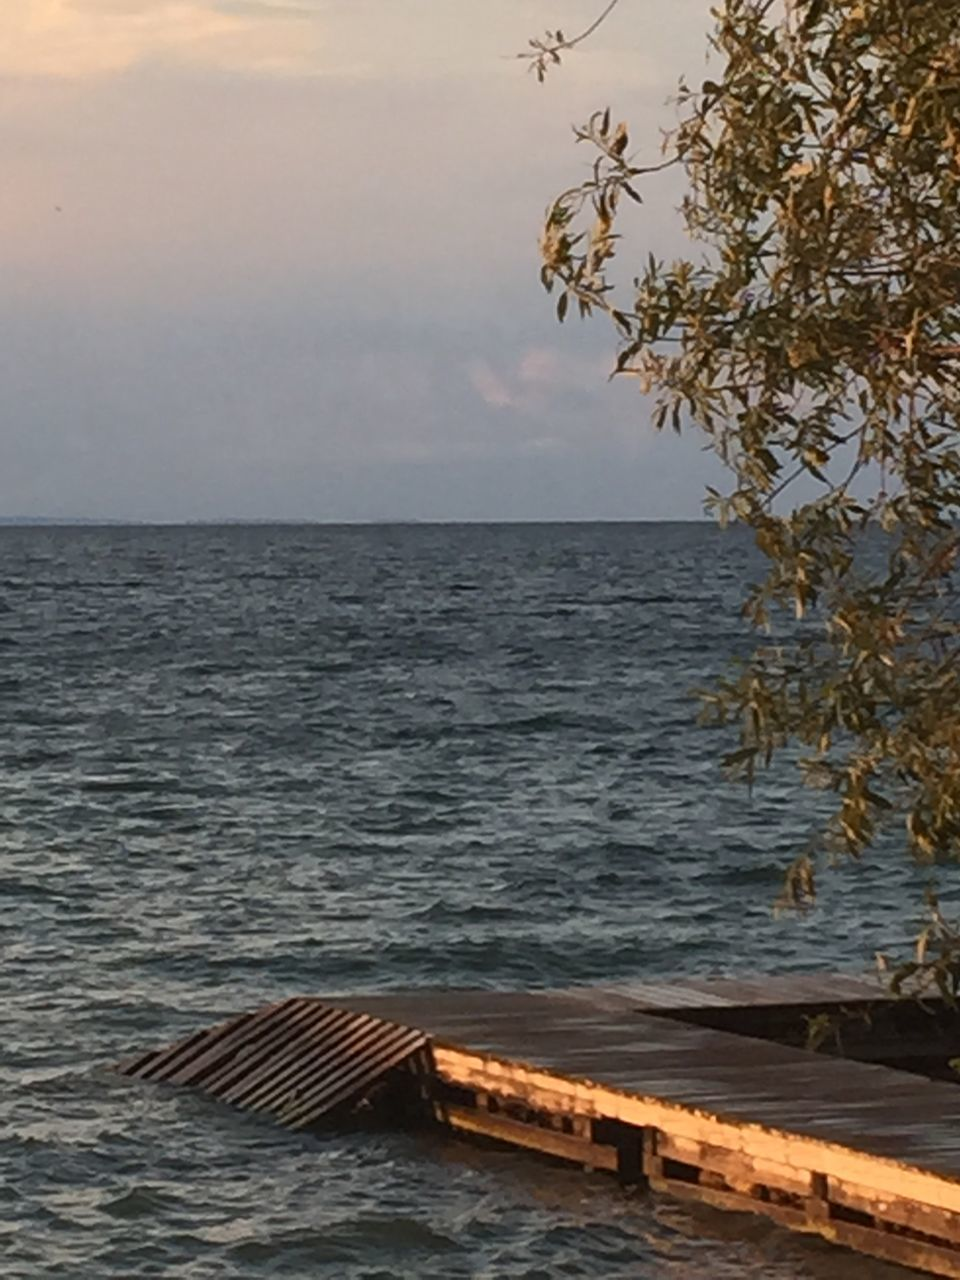 sea, water, horizon over water, tranquil scene, sunset, scenics, no people, beauty in nature, nature, wood - material, tranquility, outdoors, beach, sky, day